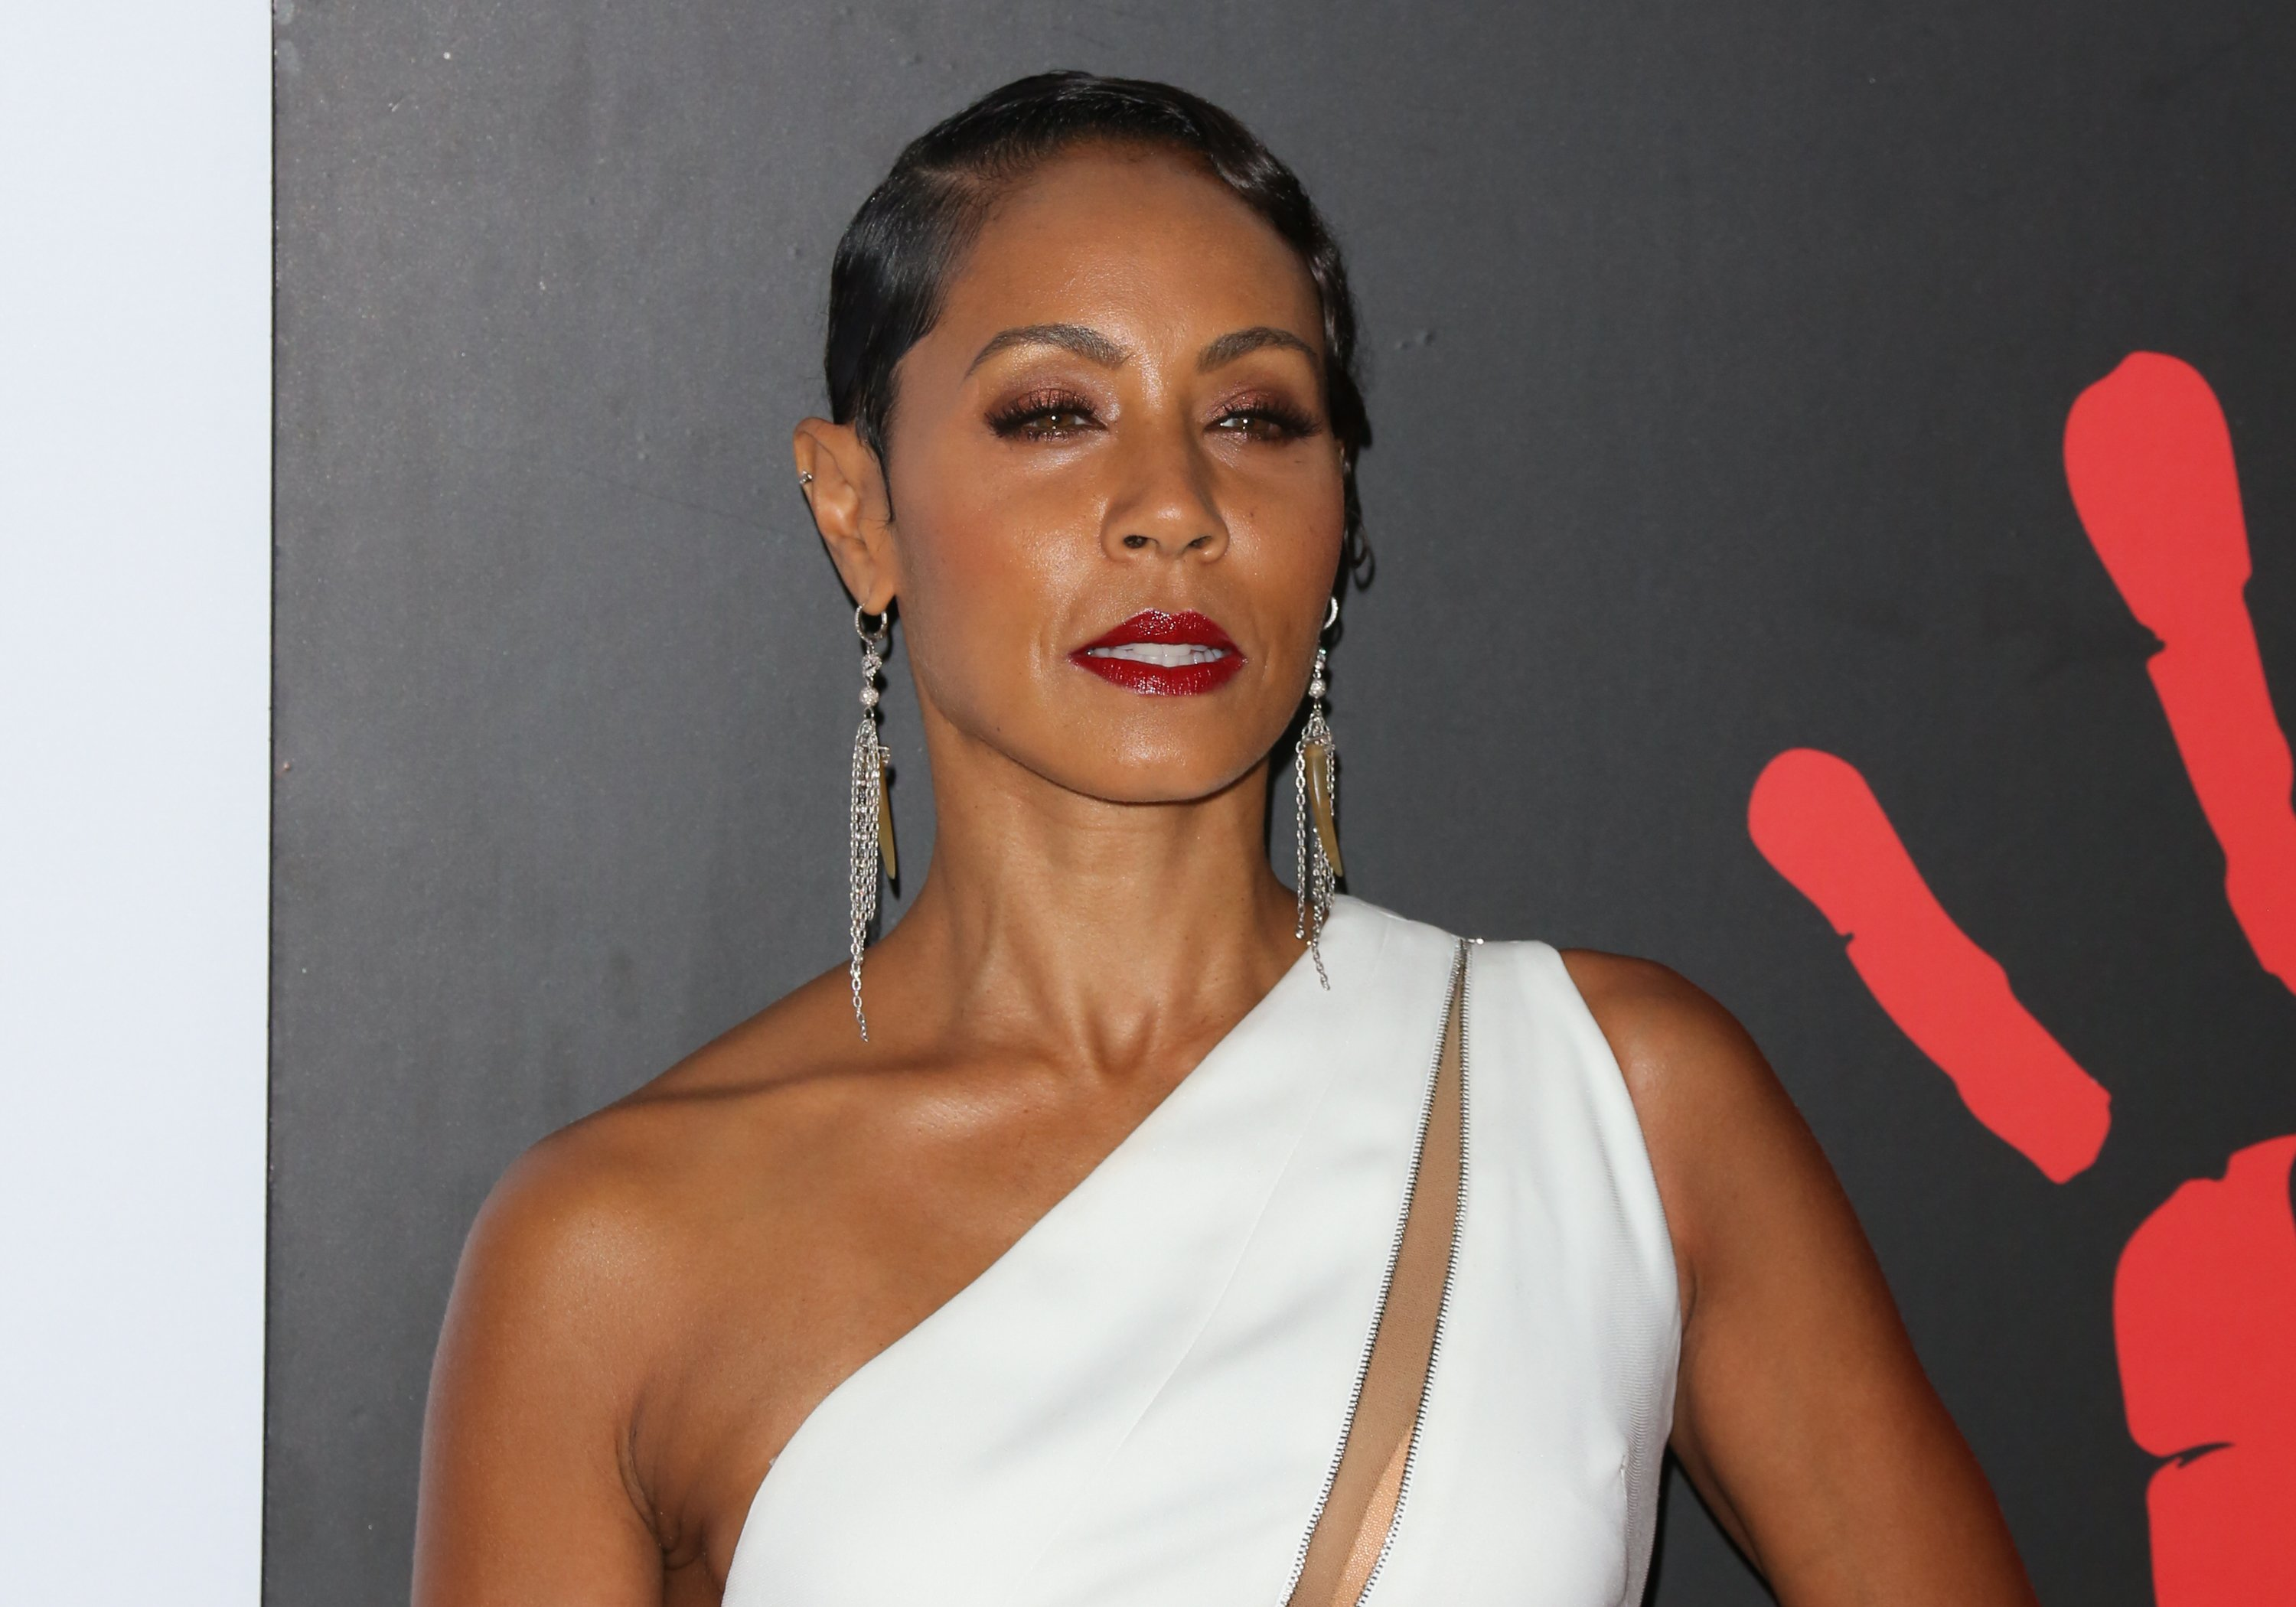 Image Credits: Getty Images / Paul Archuleta | Actress Jada Pinkett Smith attends the 2nd Annual Diamond Ball at The Barker Hanger on December 10, 2015 in Santa Monica, California.